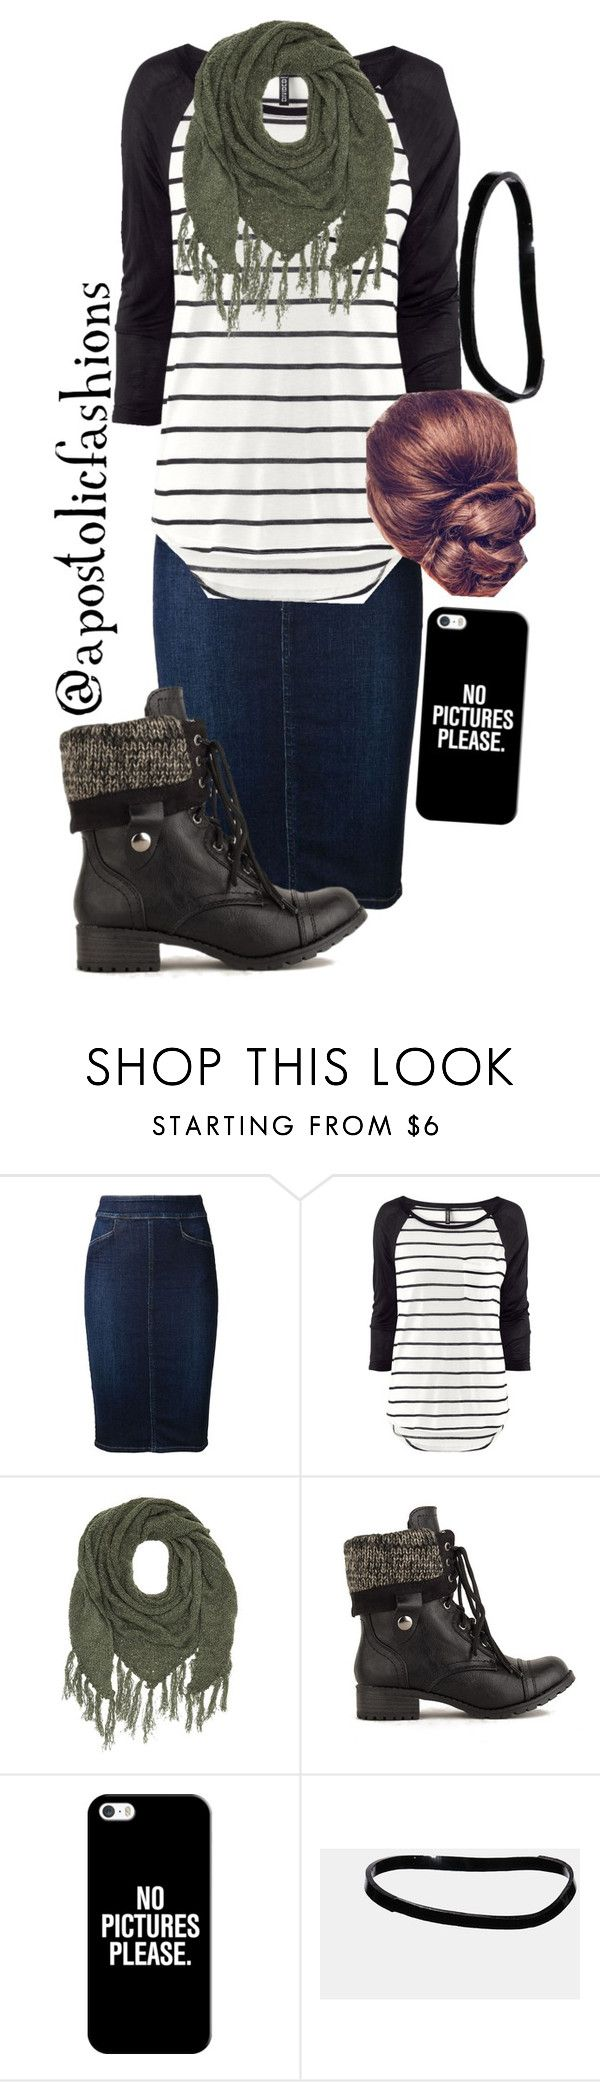 """""""Apostolic Fashions #911"""" by apostolicfashions on Polyvore featuring Citizens of Humanity, H&M, Charlotte Russe, Casetify and ASOS"""